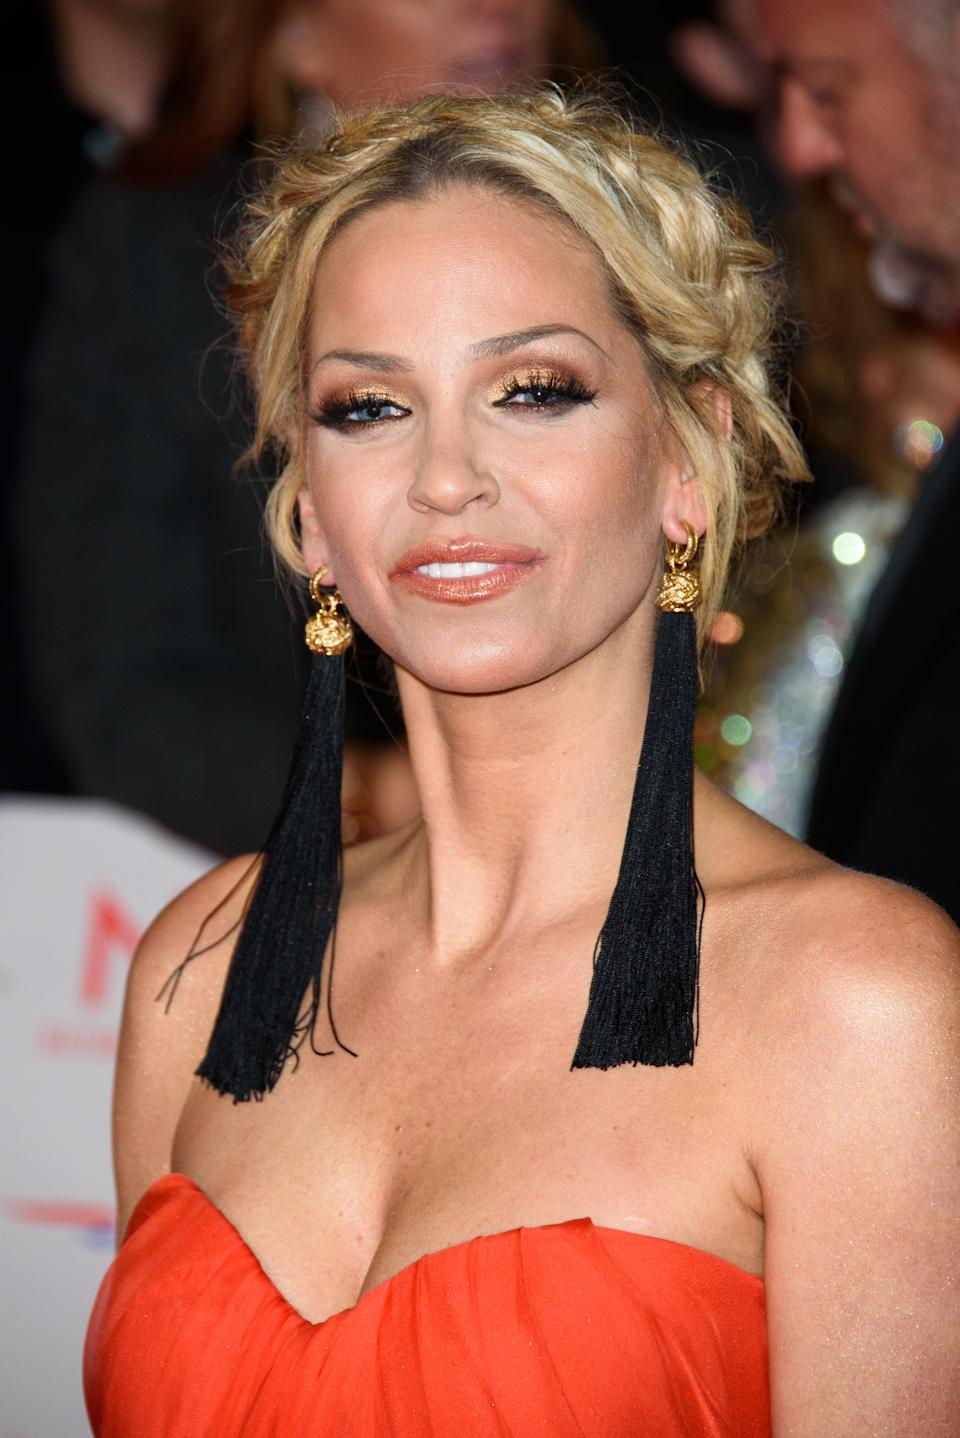 LONDON, ENGLAND - JANUARY 23: Sarah Harding attends the National Television Awards 2018 at The O2 Arena on January 23, 2018 in London, England. (Photo by Joe Maher/FilmMagic)